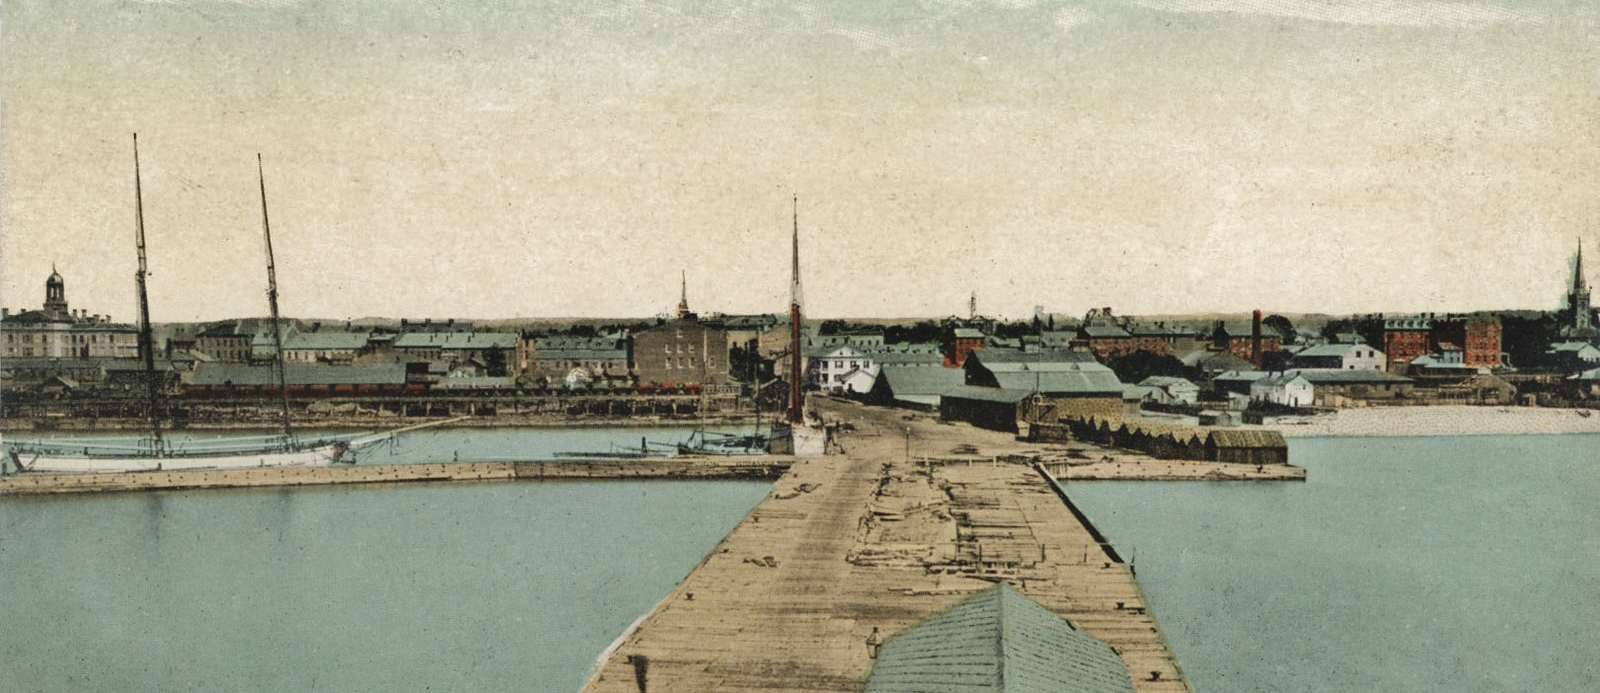 Cobourg Harbour Ore Cars, post 1869                                                                                                                                                              photo provided by george parker